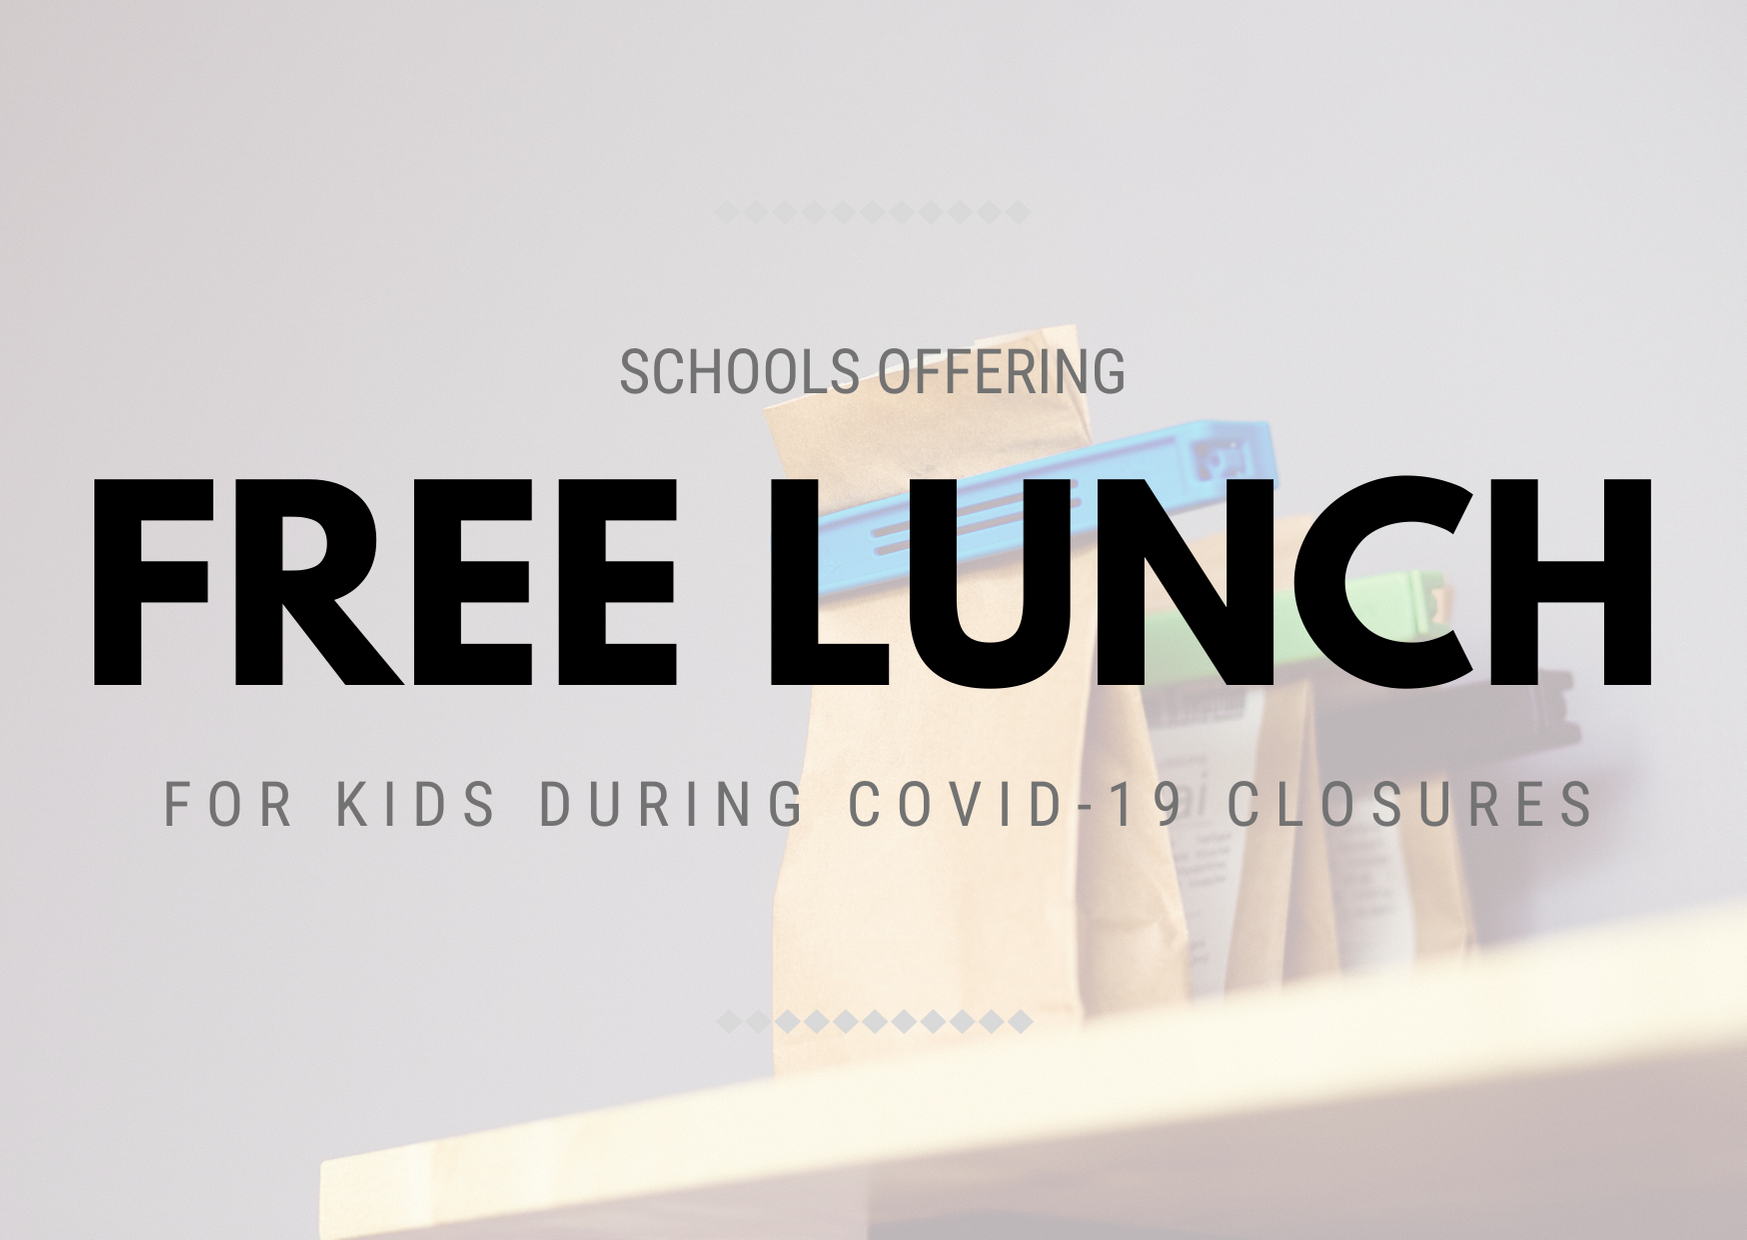 List of Free Lunch Site during COVID-19 School Closures